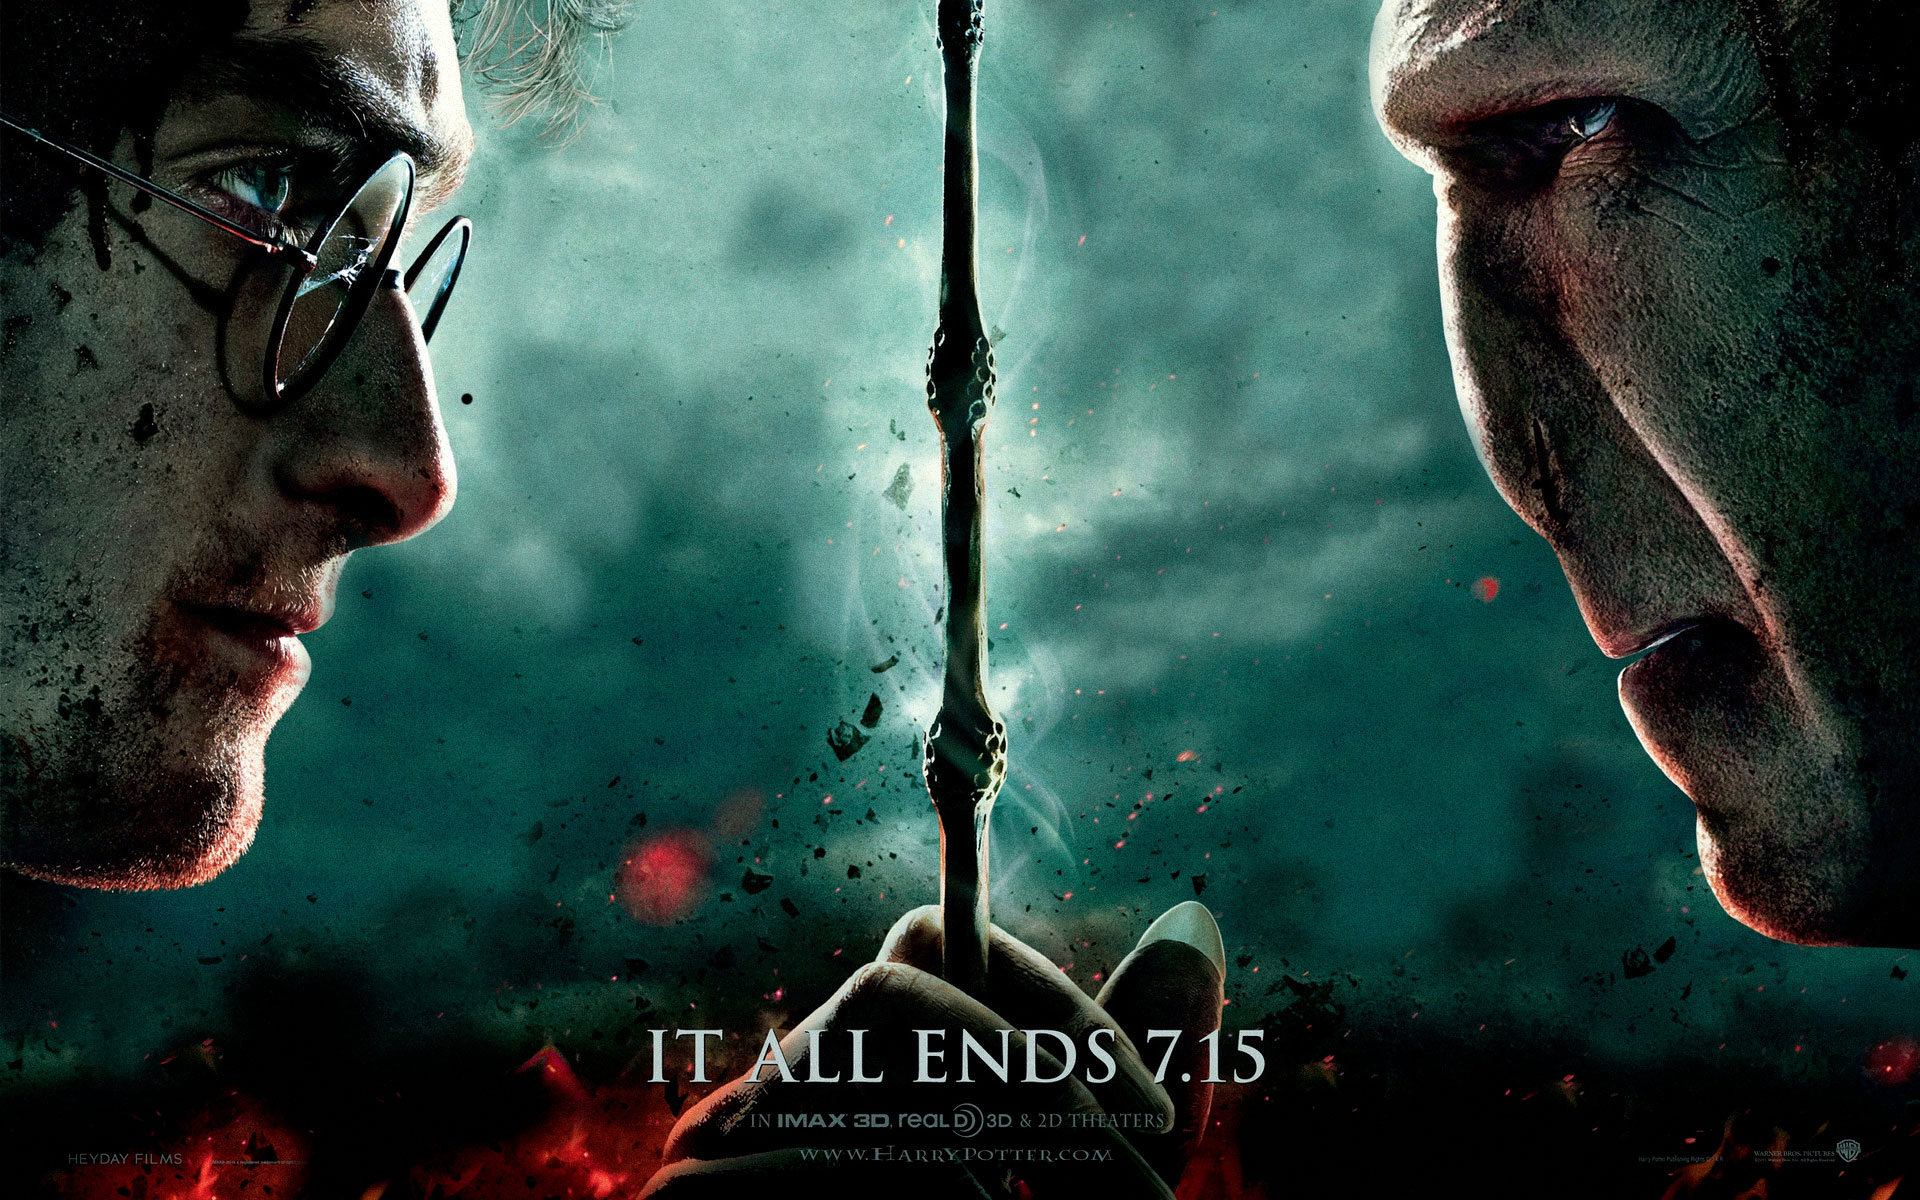 Fullscreen Movies Harry Potter 7 Wallpaper